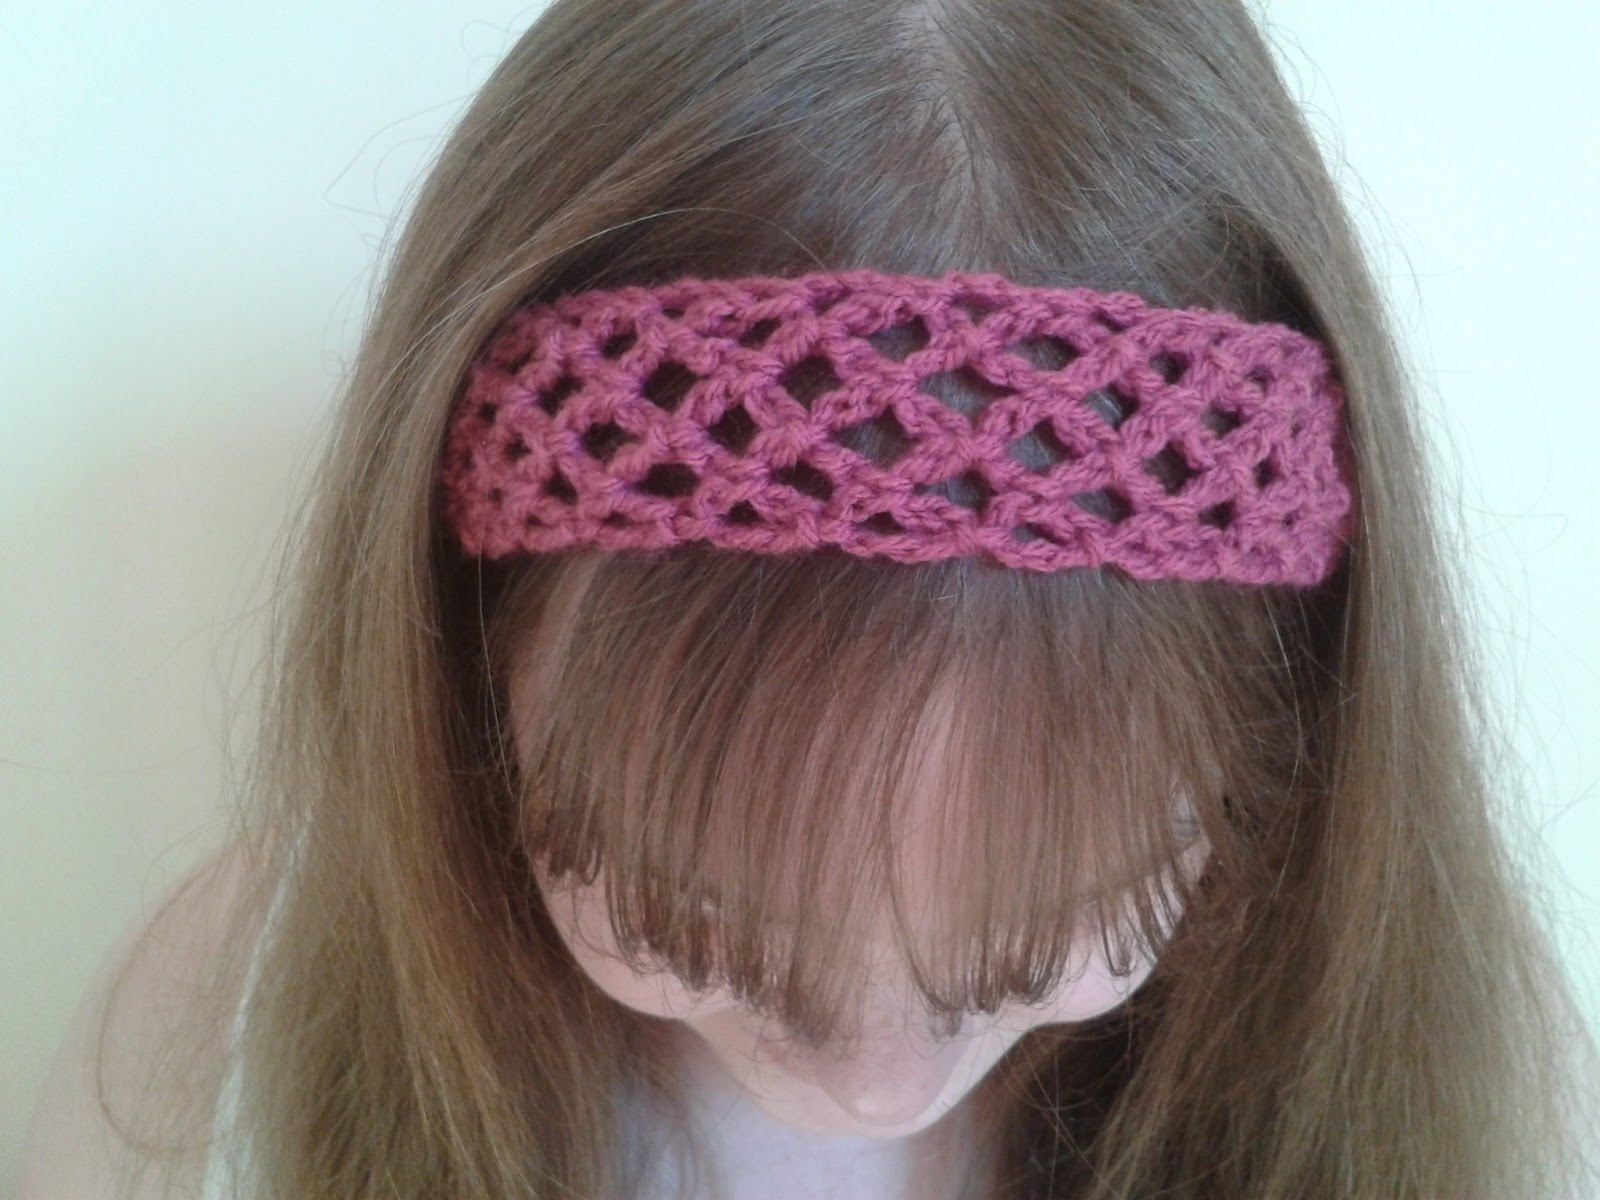 Crocheting A Headband : ... to comment and tell us how you customized your headband for spring